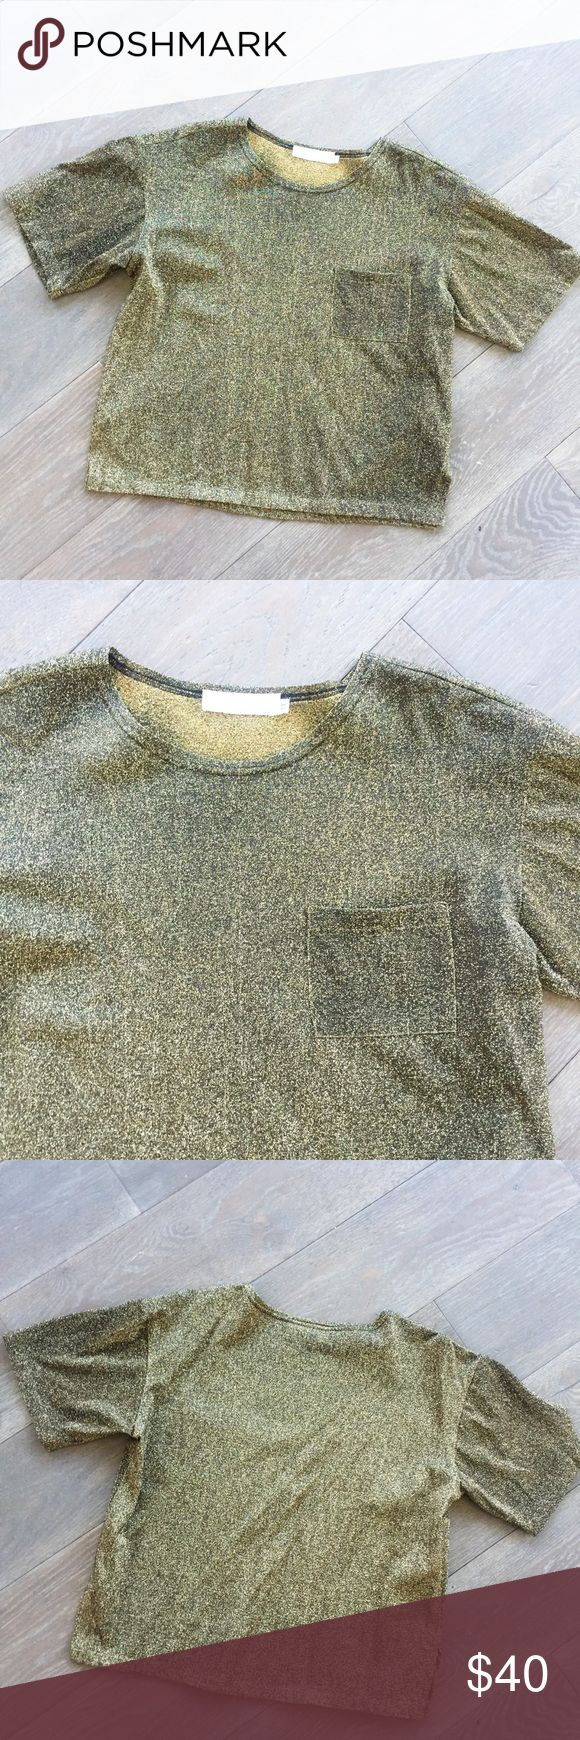 Vintage Black&Gold Metallic Boxy T-Shirt Vintage Black&Gold Metallic Boxy T-Shirt, women's size Medium. Fits Boxy/oversized. In perfect vintage condition, almost wouldn't know it was vintage at all! Front pocket, cute with black jeans or culottes. Vintage Tops Tees - Short Sleeve